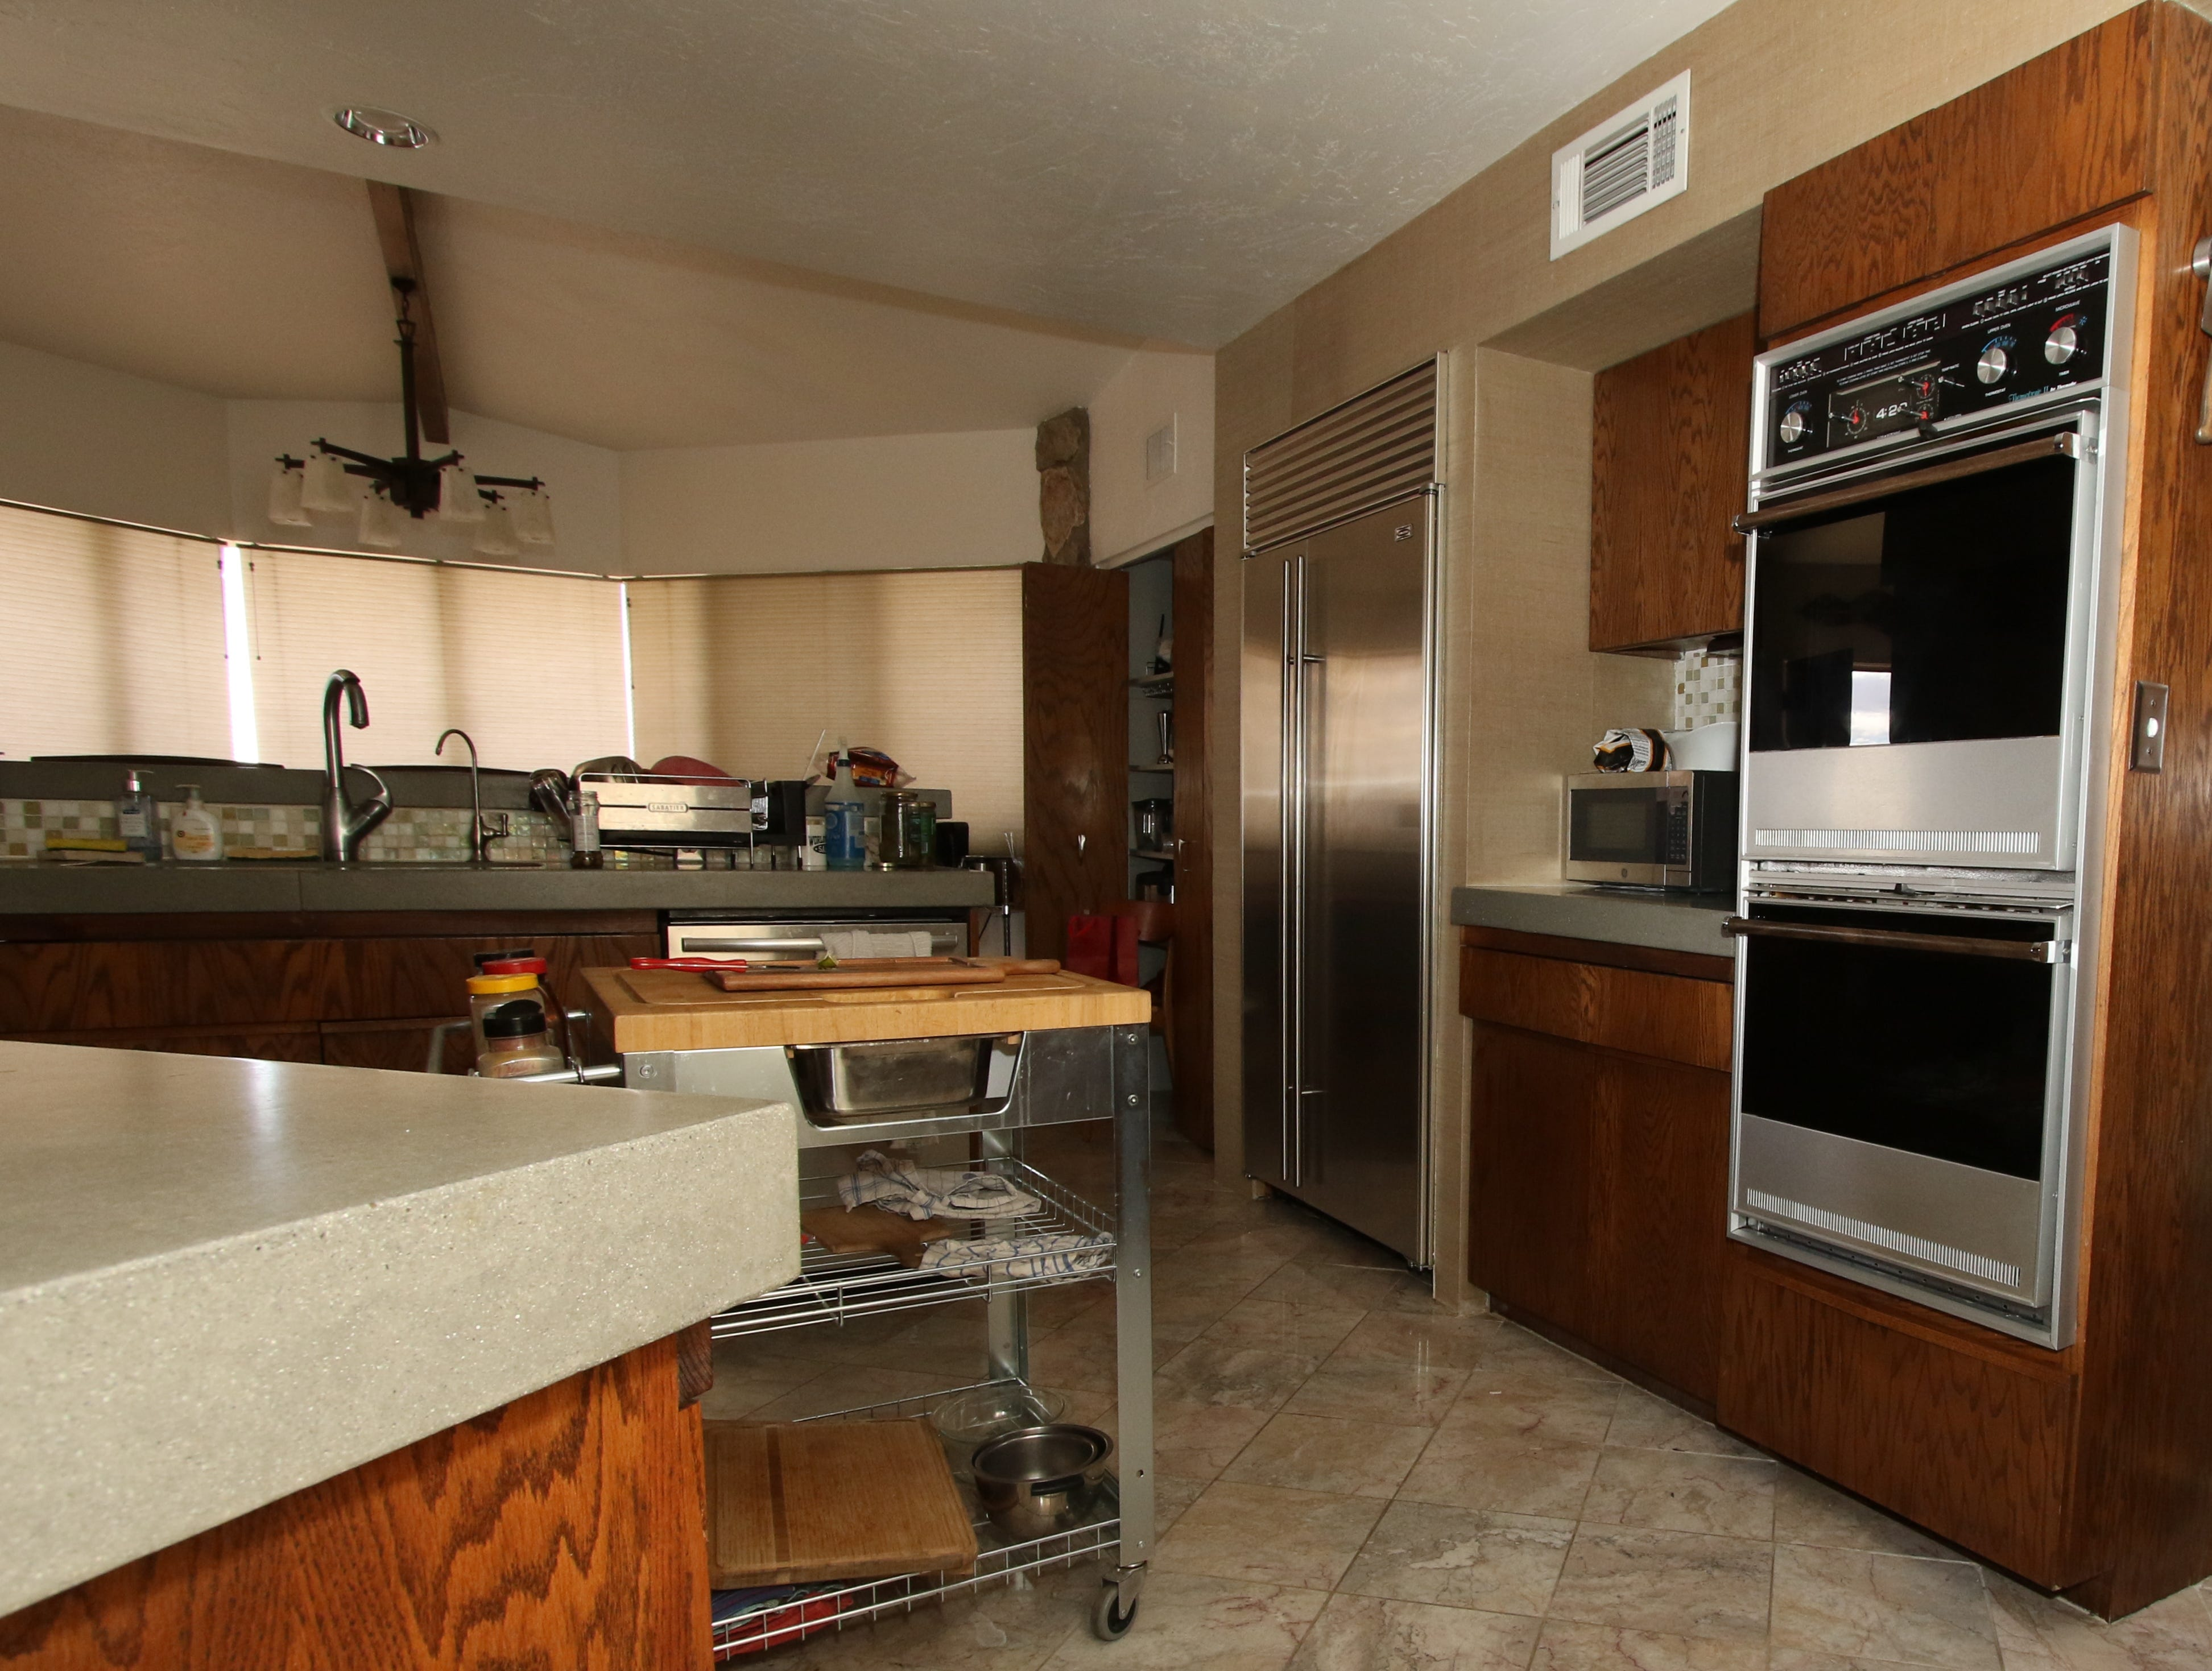 The kitchen features thick, polished, concrete counters with Frank Lloyd Wright embellishments. It also contains the original appliances and cabinetry.